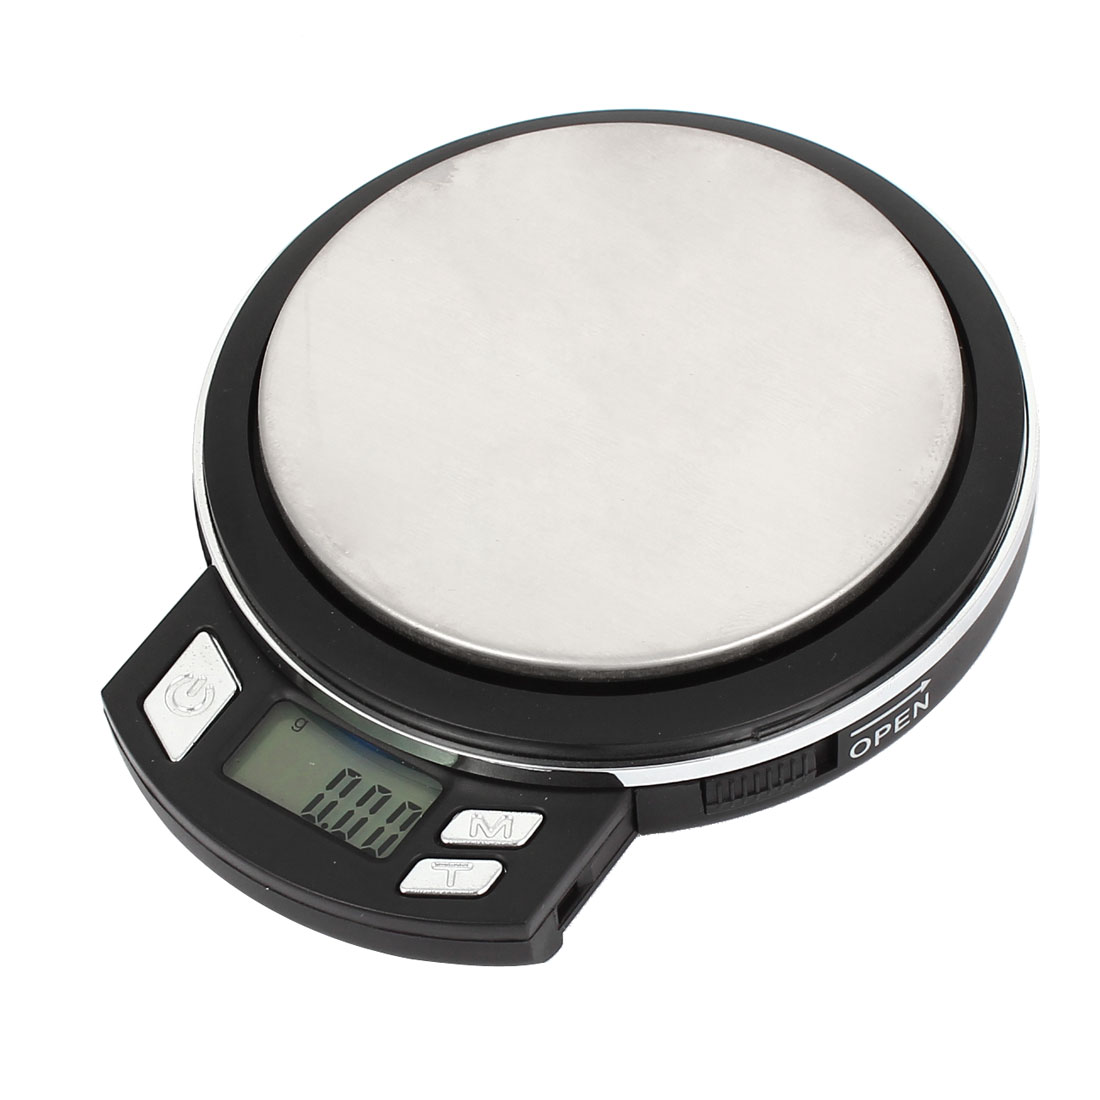 Round 0.01g 100g Jewelry Weight Balance Mini Digital Pocket Scale